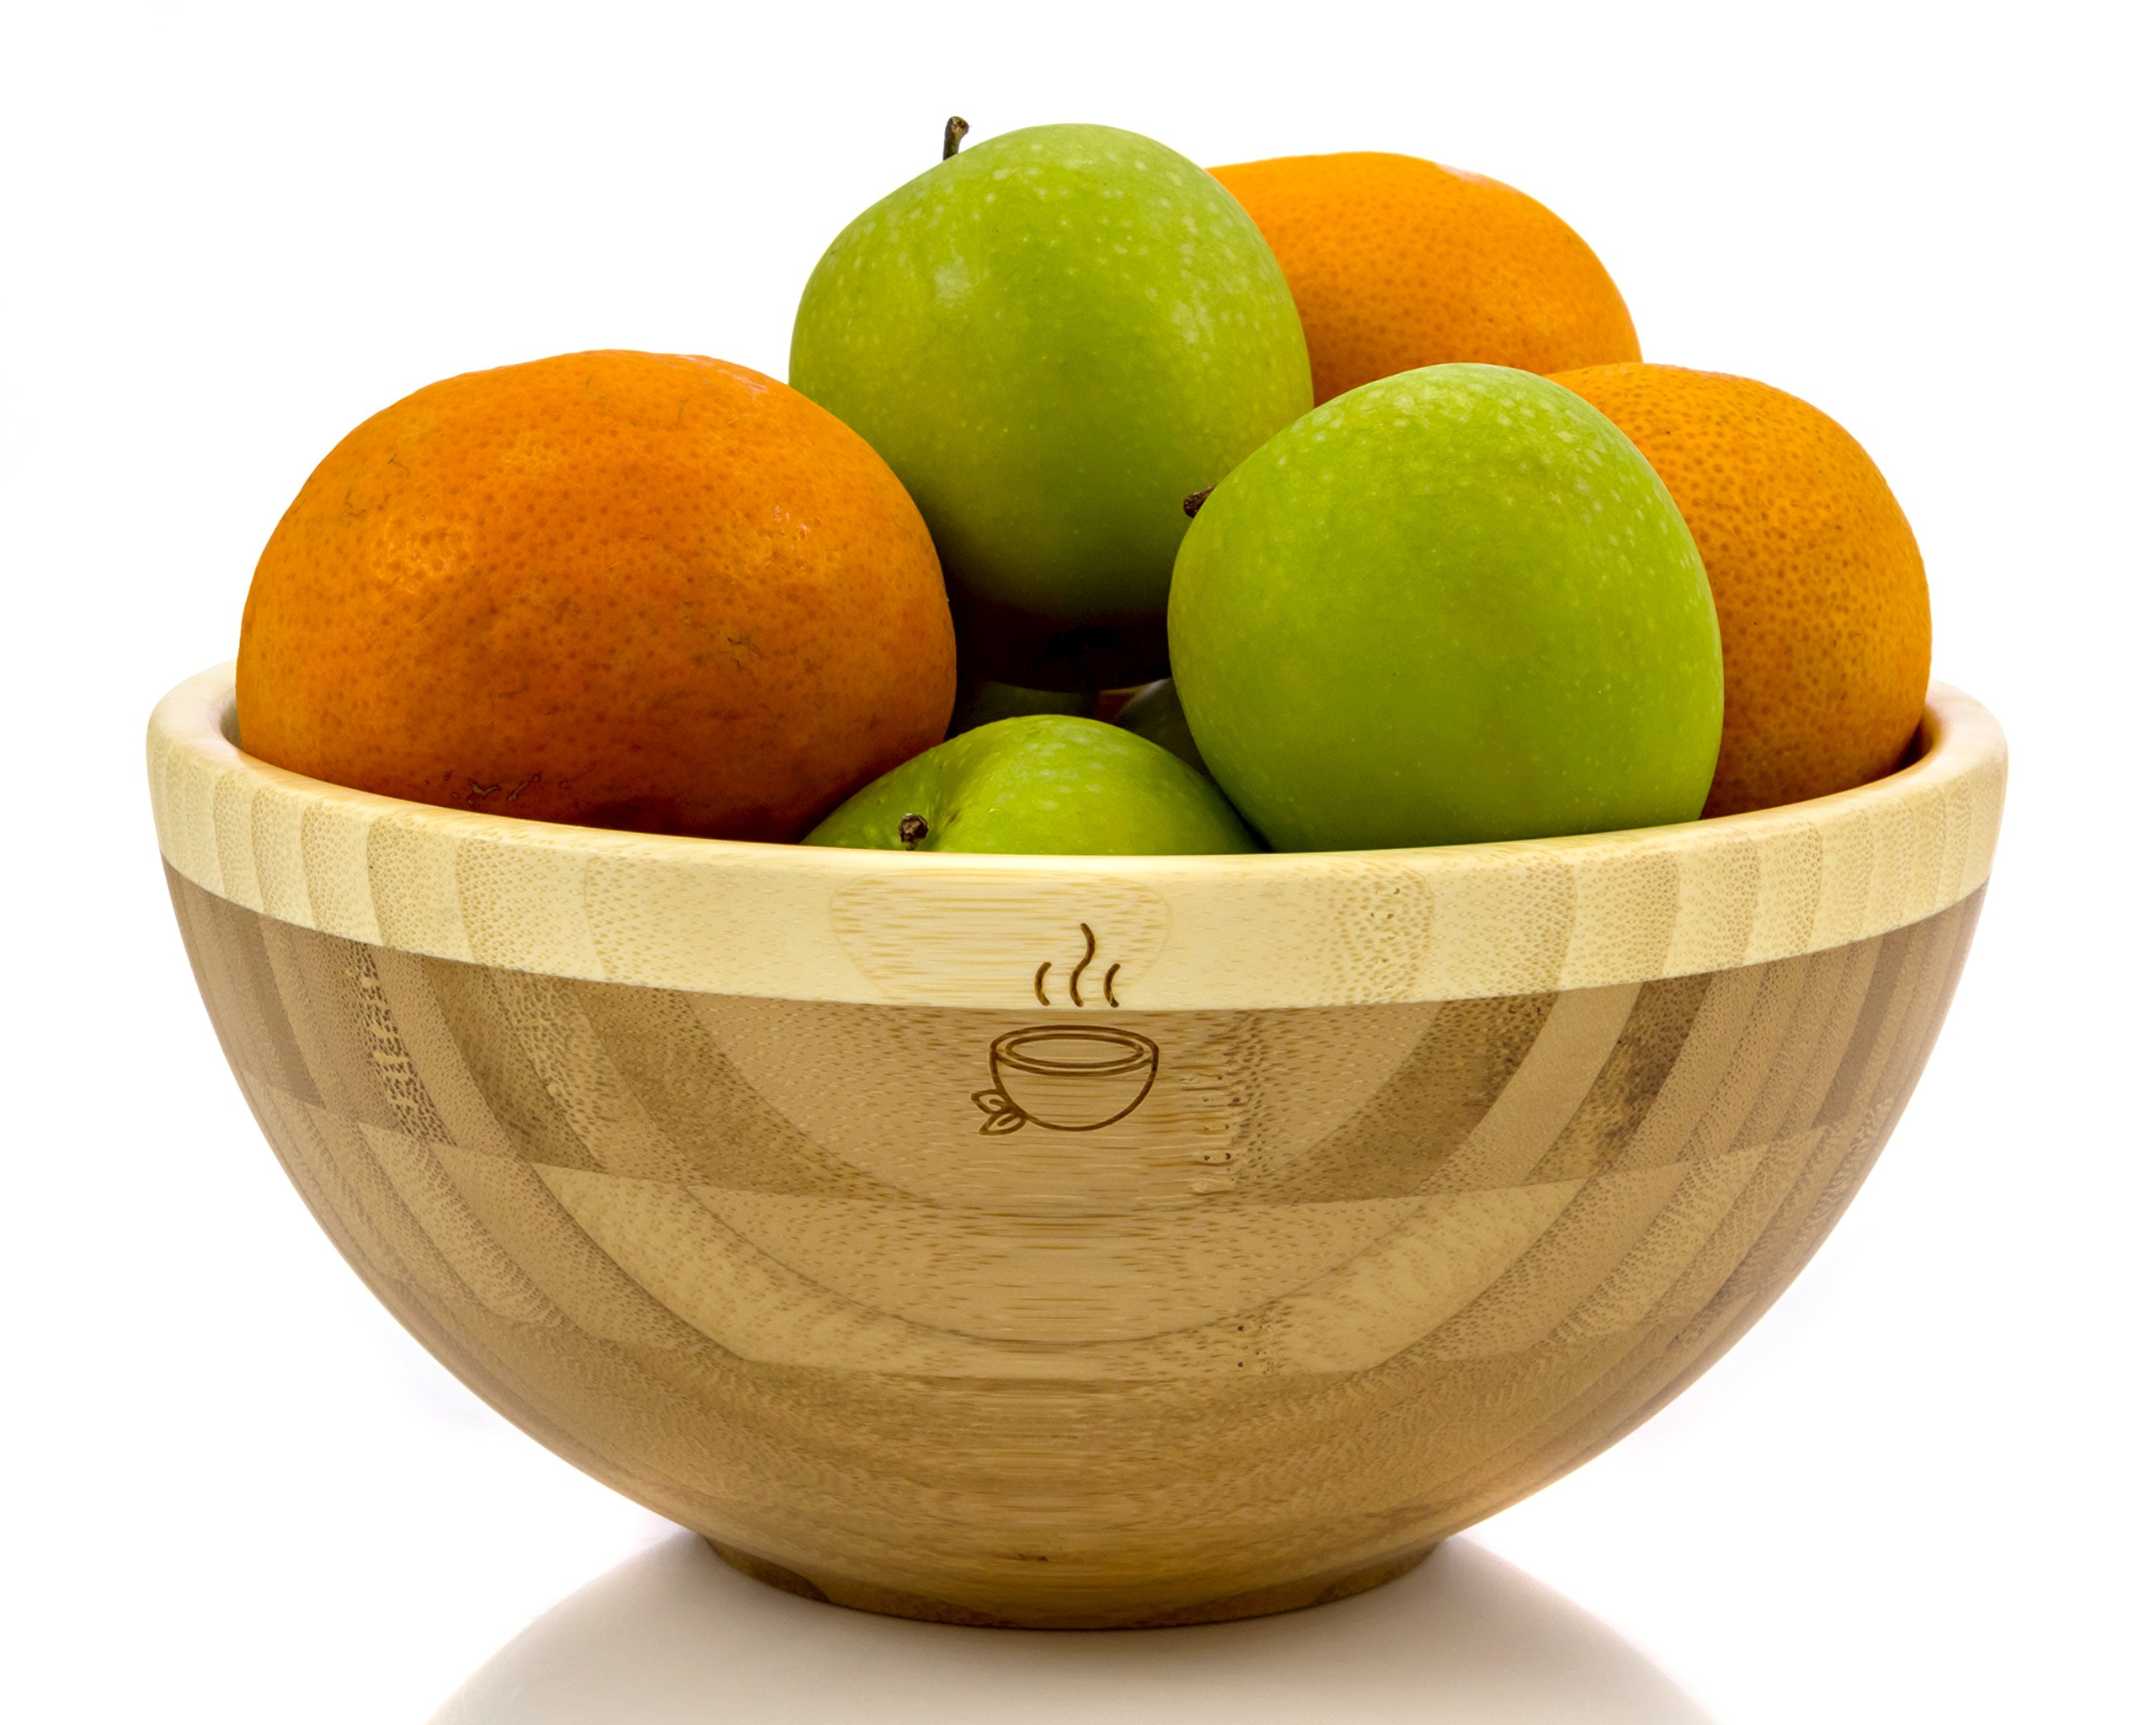 Bamboo Bowl – 100% Organic Handmade Bamboo Wood Salad Bowl – 8inch x 4inch Diameter – Perfect Bowl for Fruits, Vegetables, Mixing, Soup or Other Foods (White)